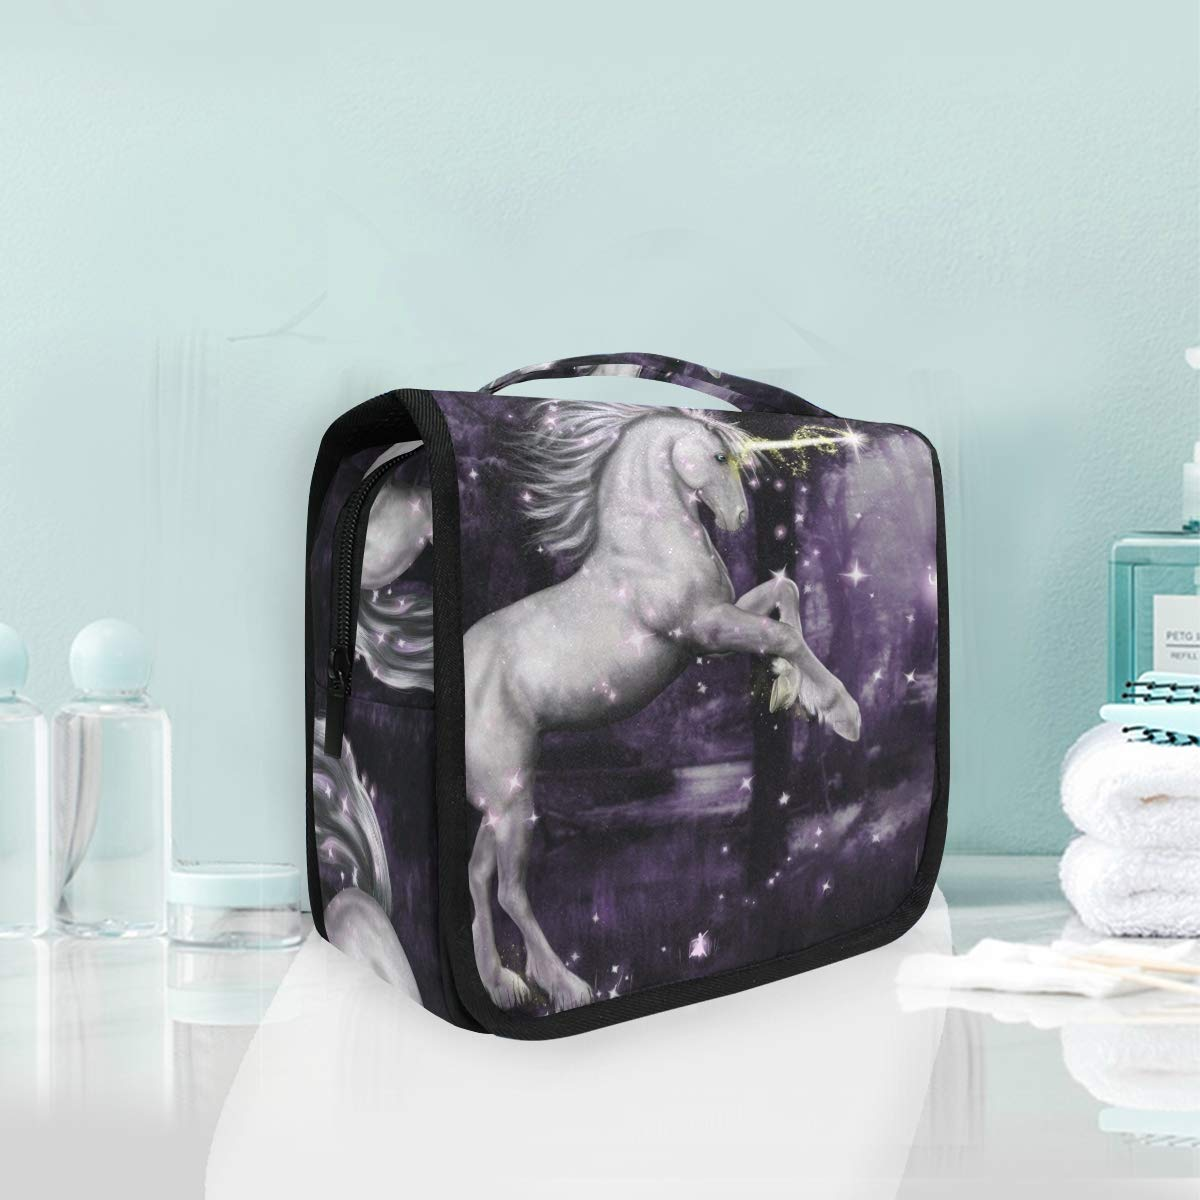 Hanging Toiletry Bag Unicorn Surrounded By Magic Portable Cosmetic Makeup Travel Organizer for Men & Women with Sturdy Hook